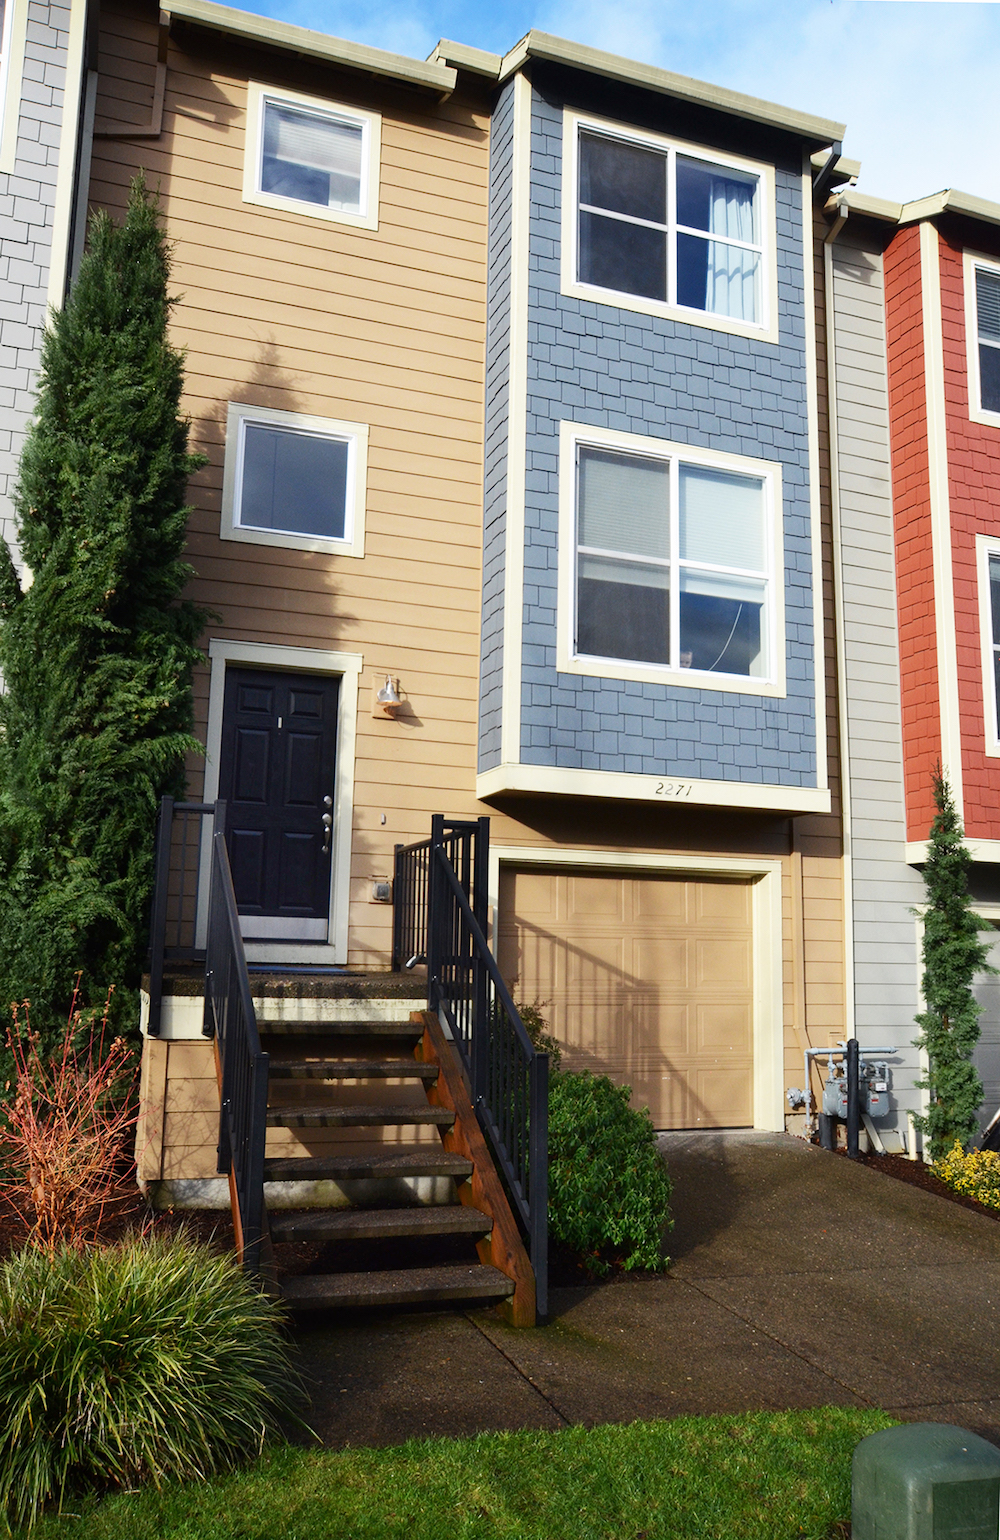 Sold Beautiful Beaverton Townhome Scout Realty Co